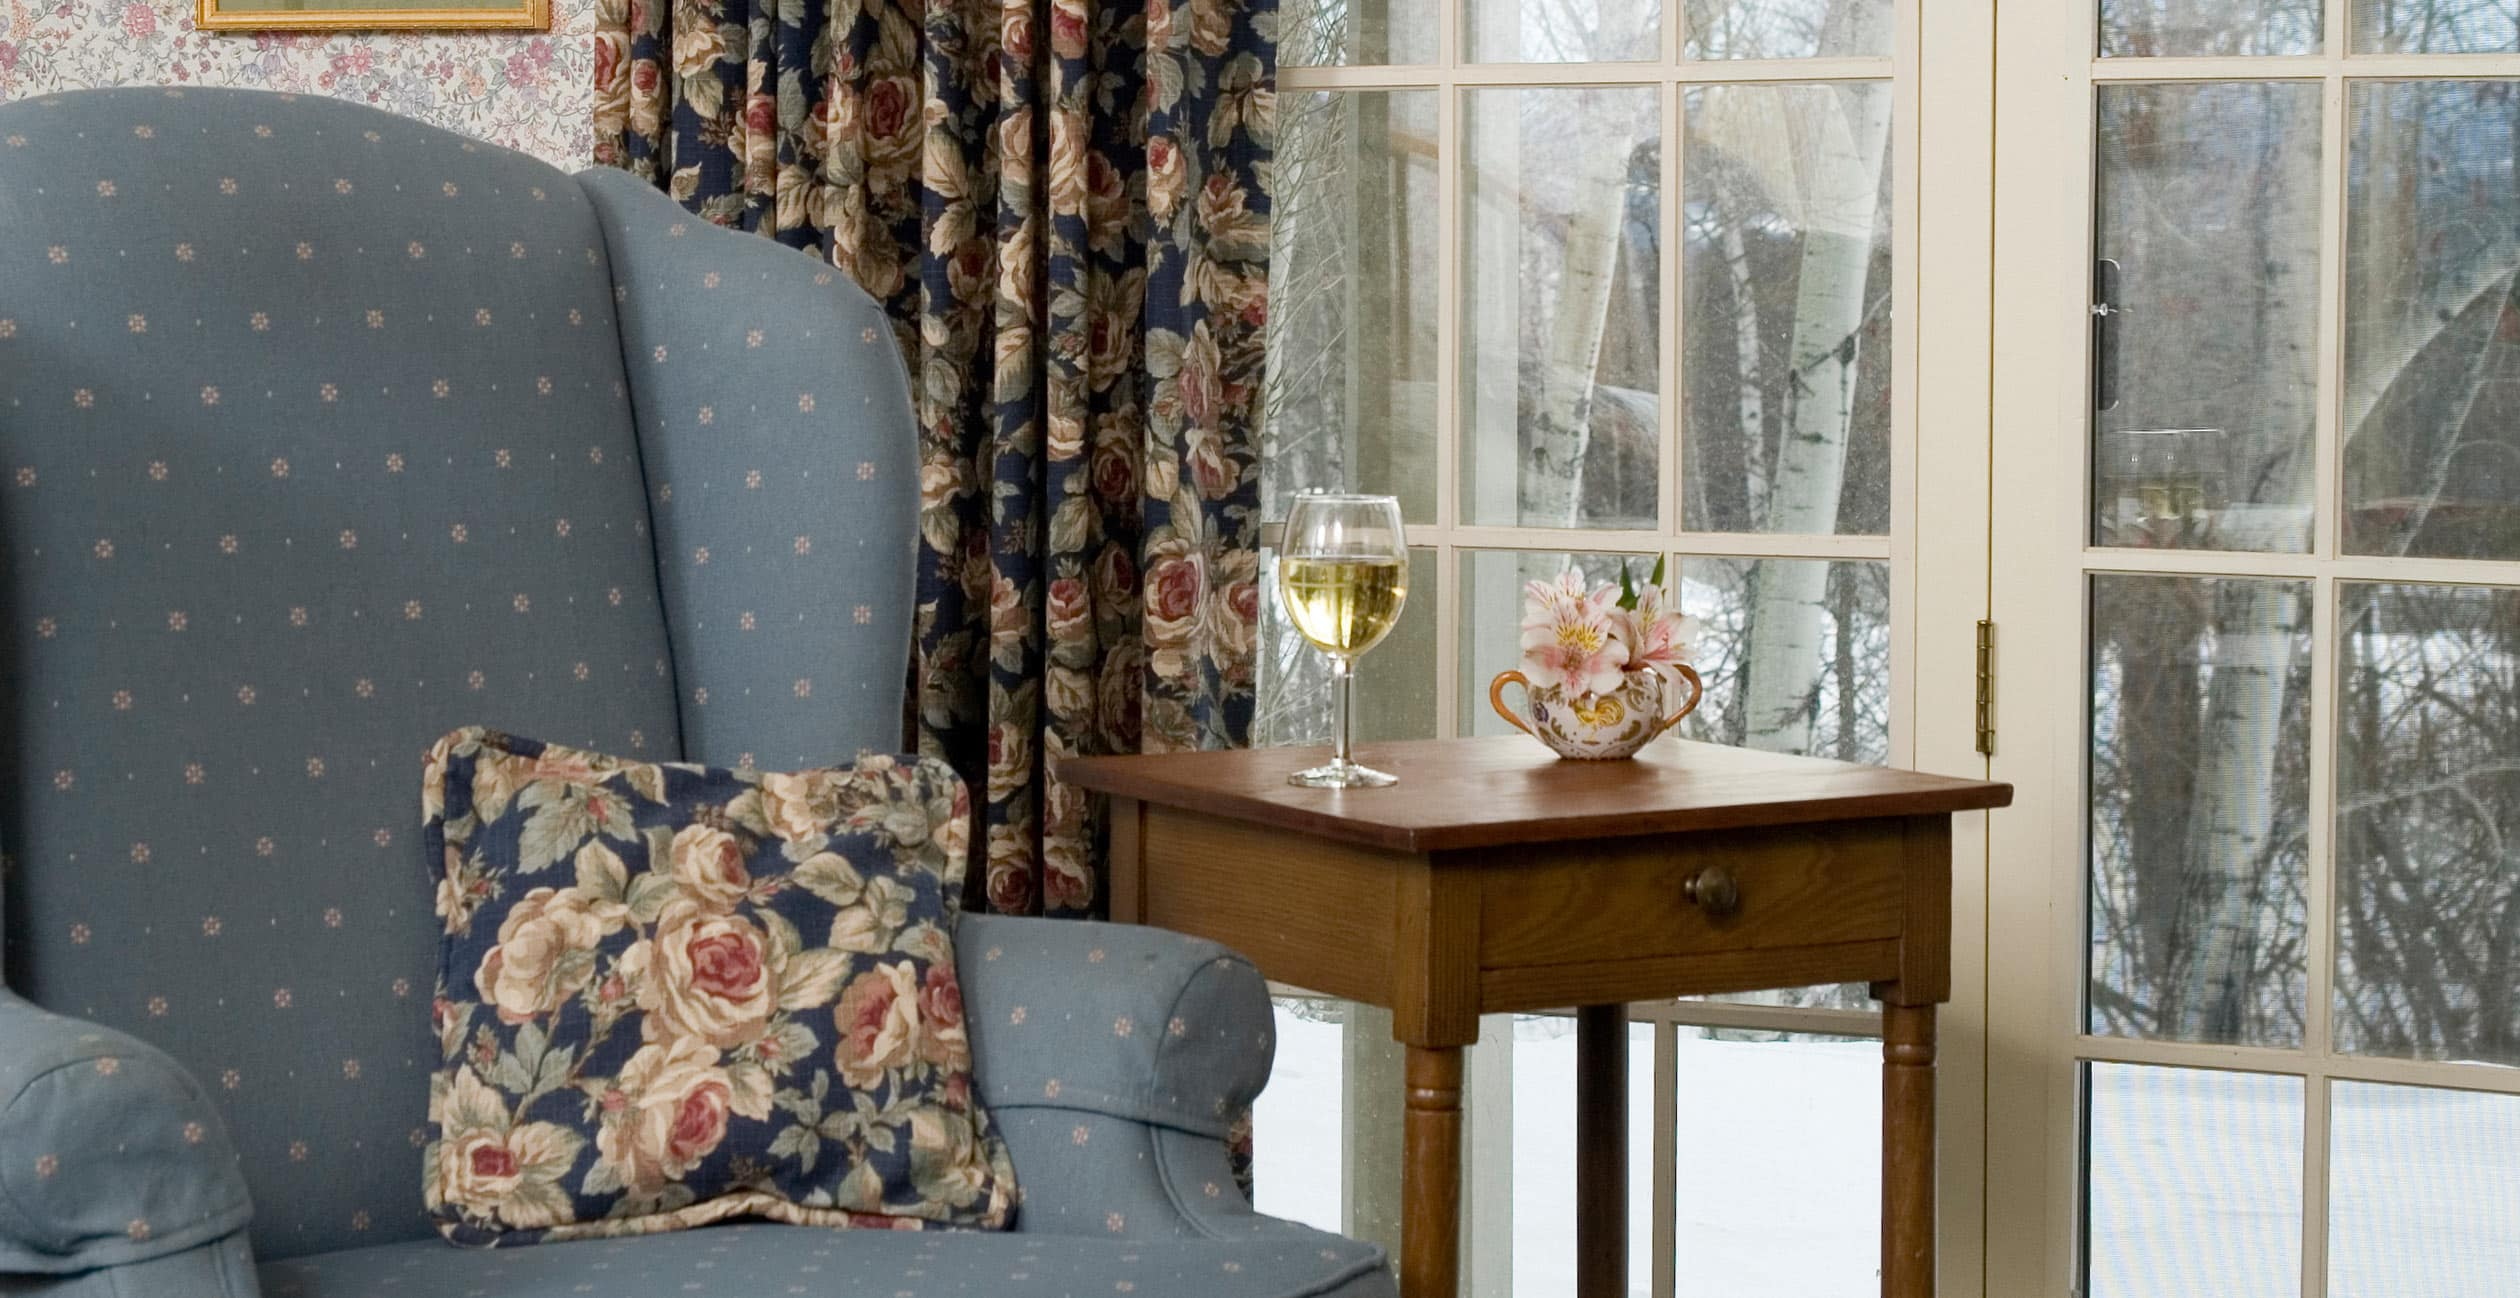 Comfortable chair with glass of white wine on table and snowy view